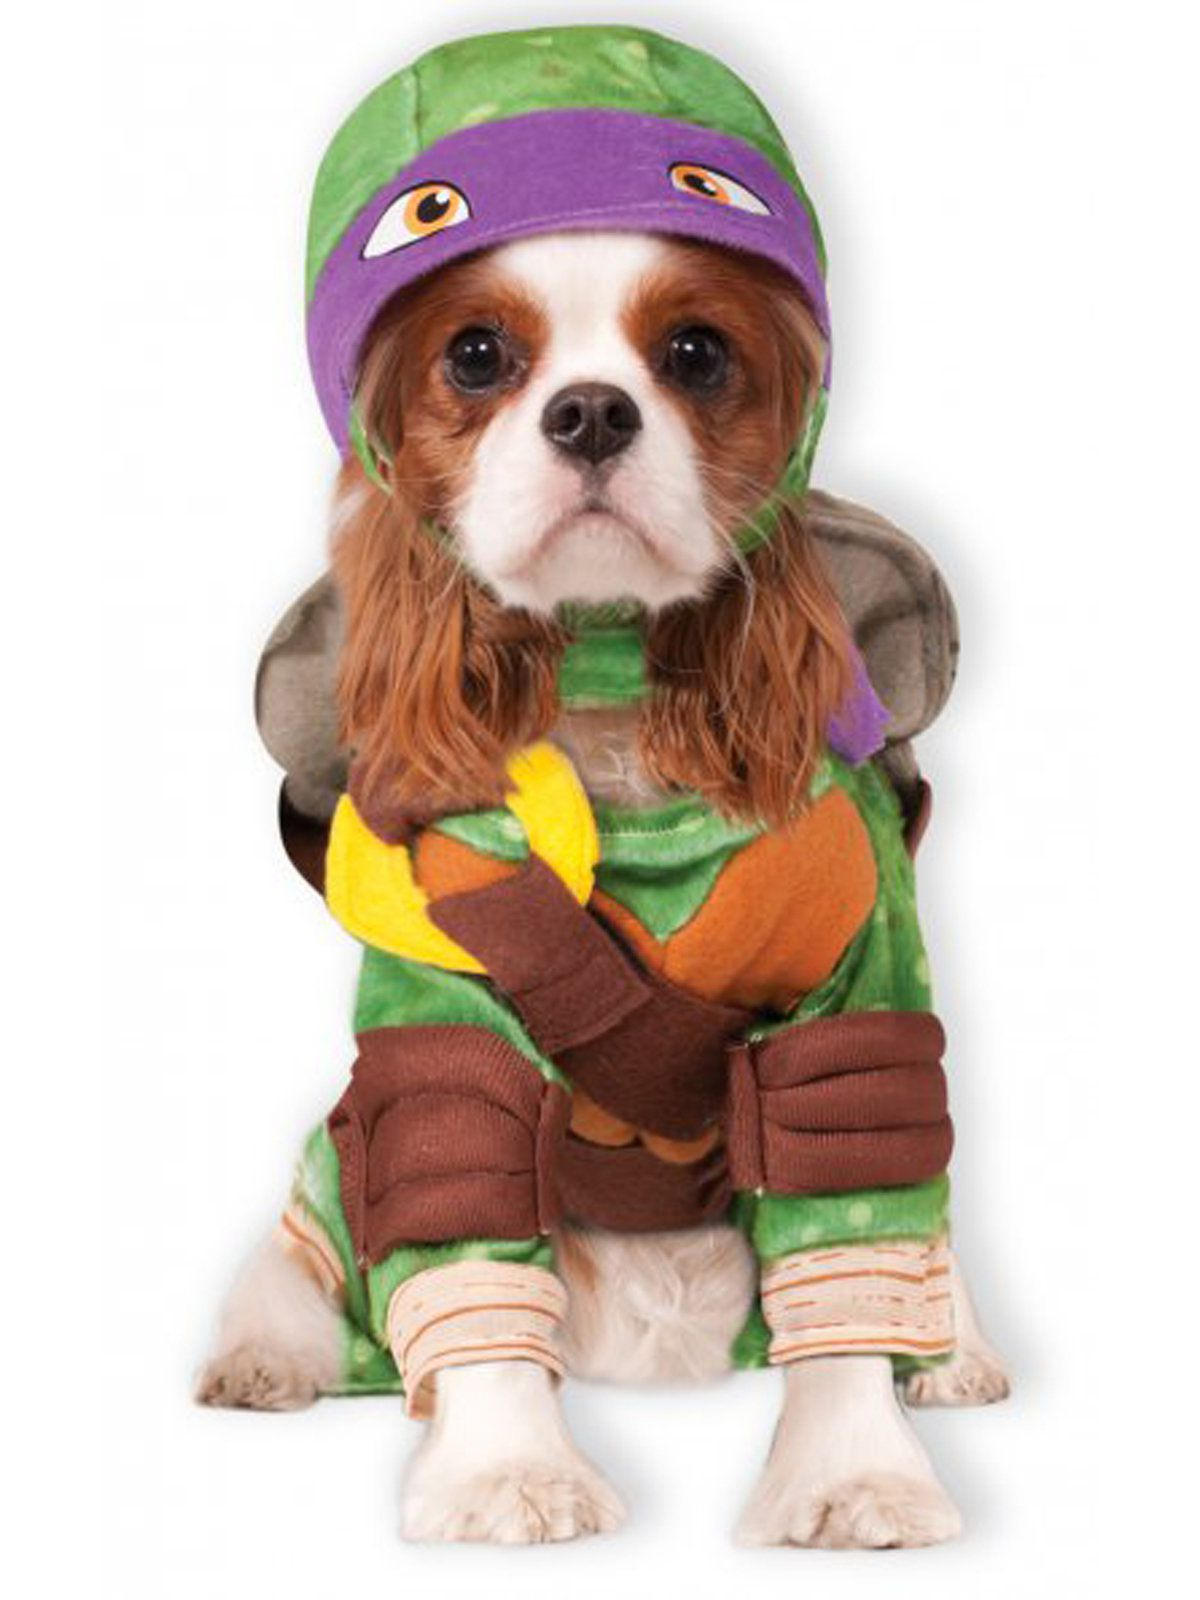 Tmnt Donatello Pet Costume Dog And Cat Costumes For 2019 Wholesale Halloween Costumes